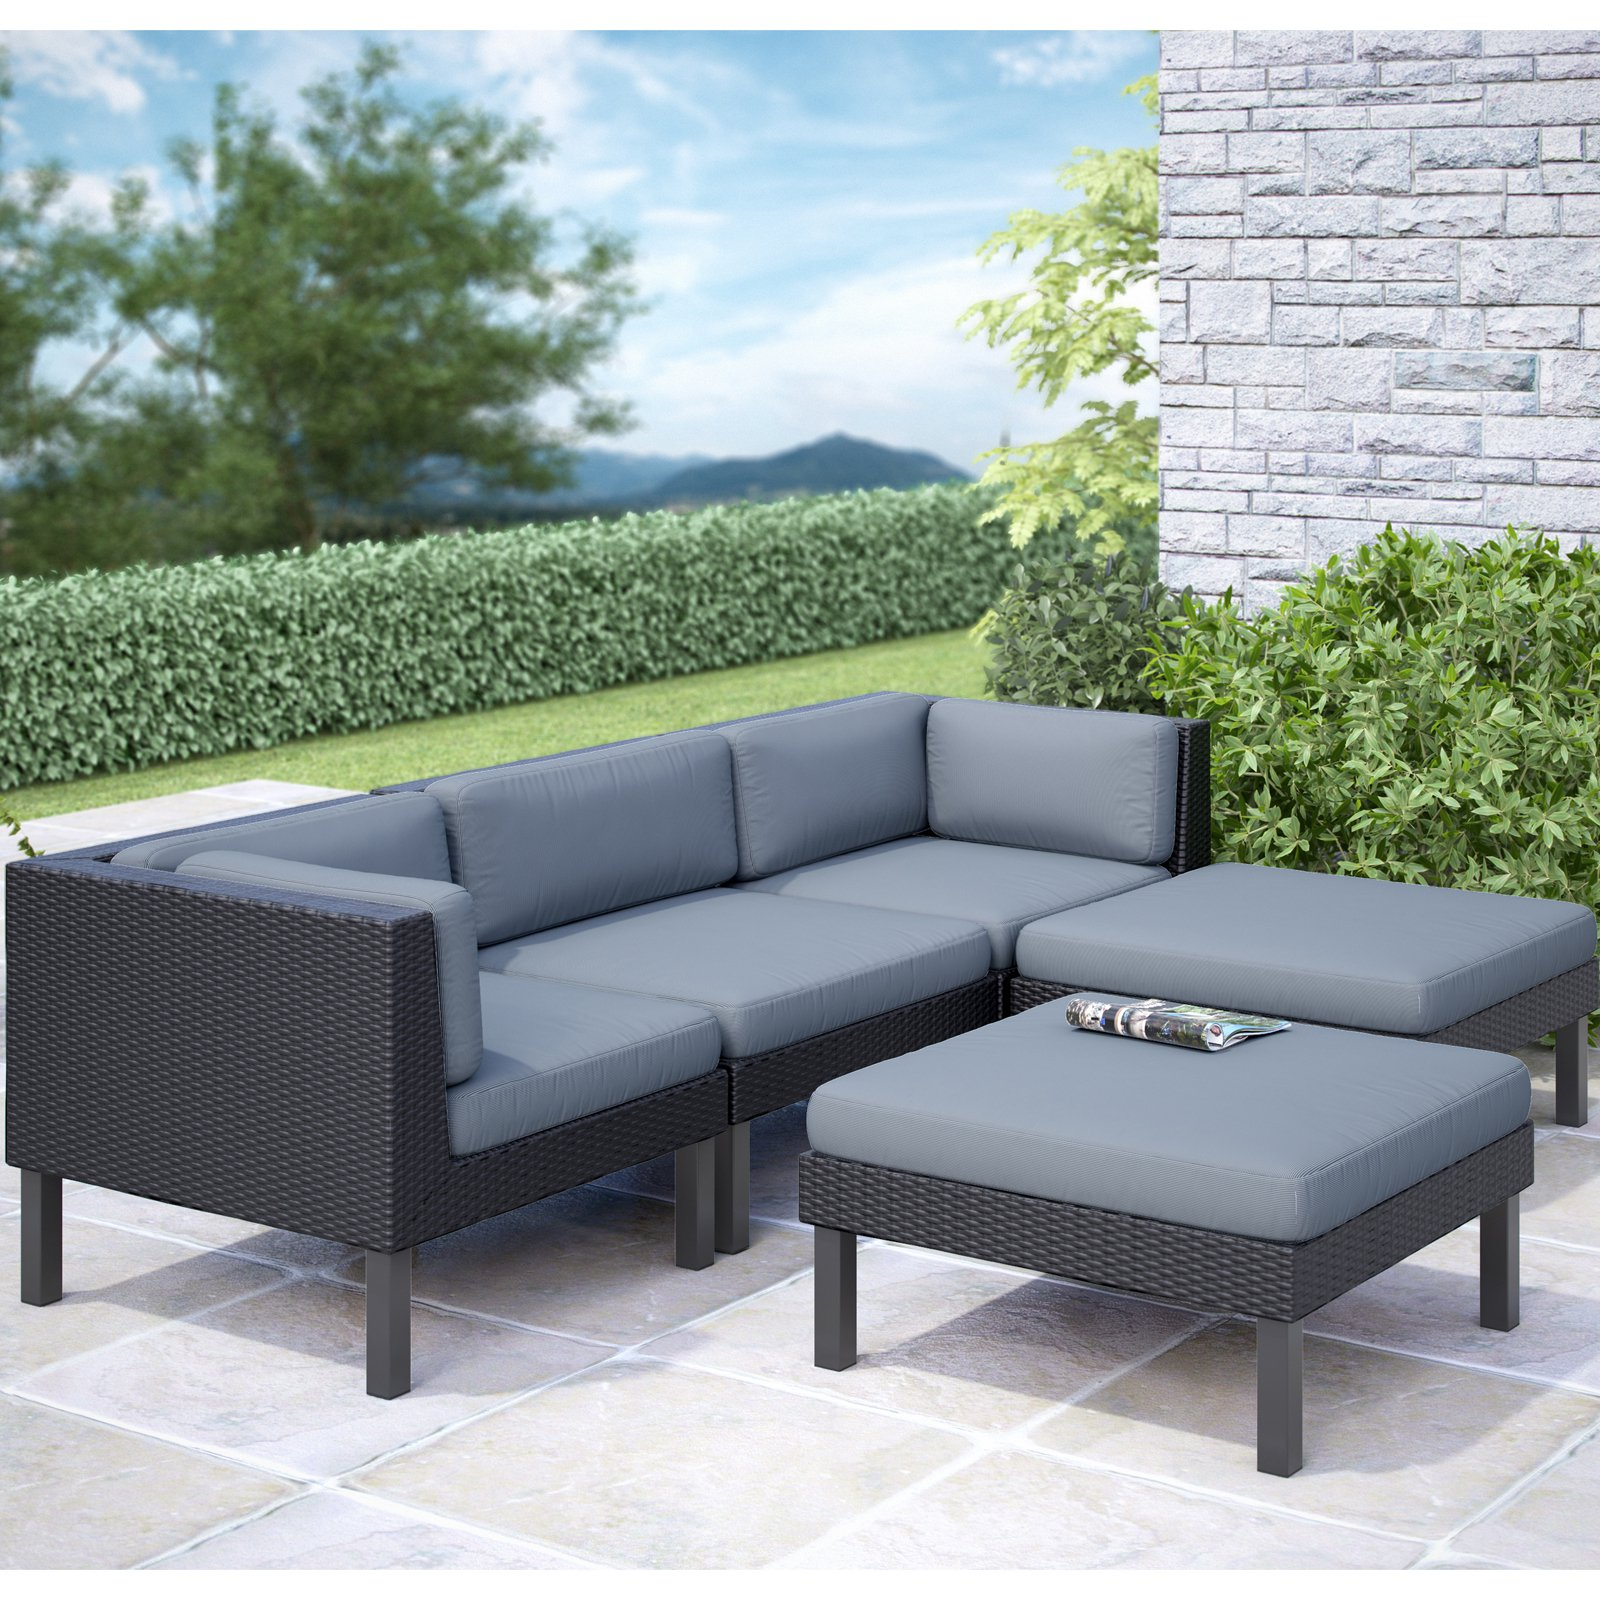 CorLiving Oakland 5pc Sofa with Chaise Lounge Patio Set, Dove Grey Cushions